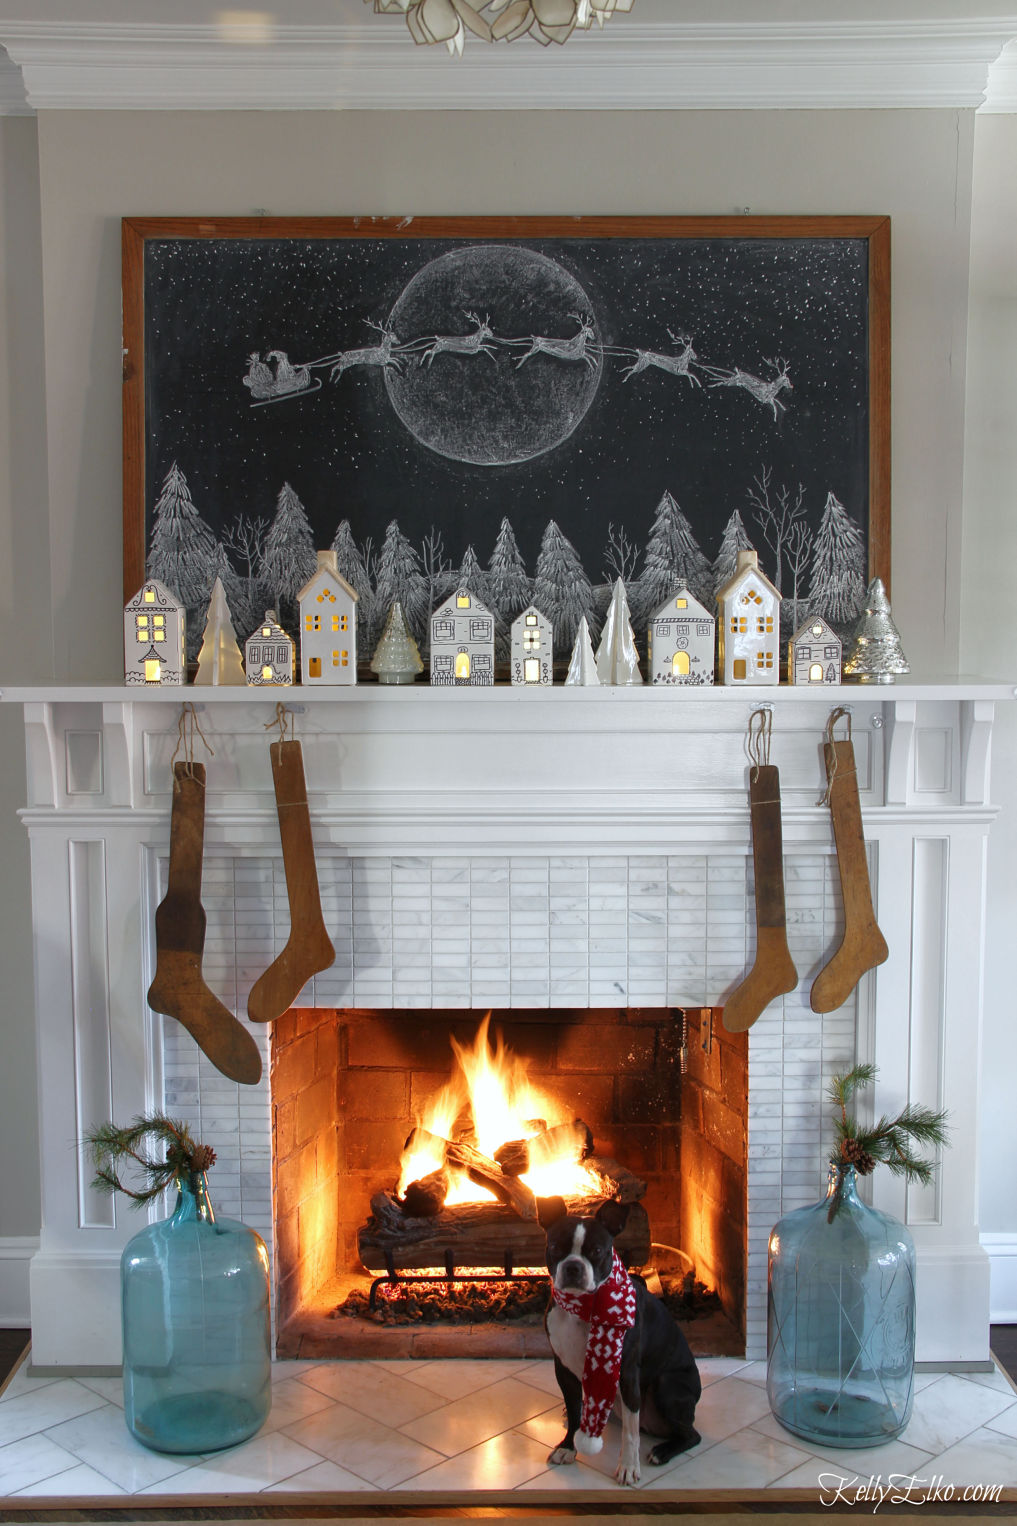 Christmas Home Tour - love this chalkboard art of Santa on his sleigh and the little Christmas houses on the mantel kellyelko.com #christmas #christmasmantel #christmasdecor #vintagechristmas #christmasart #retrochristmas #farmhousechristmas #christmasdecor